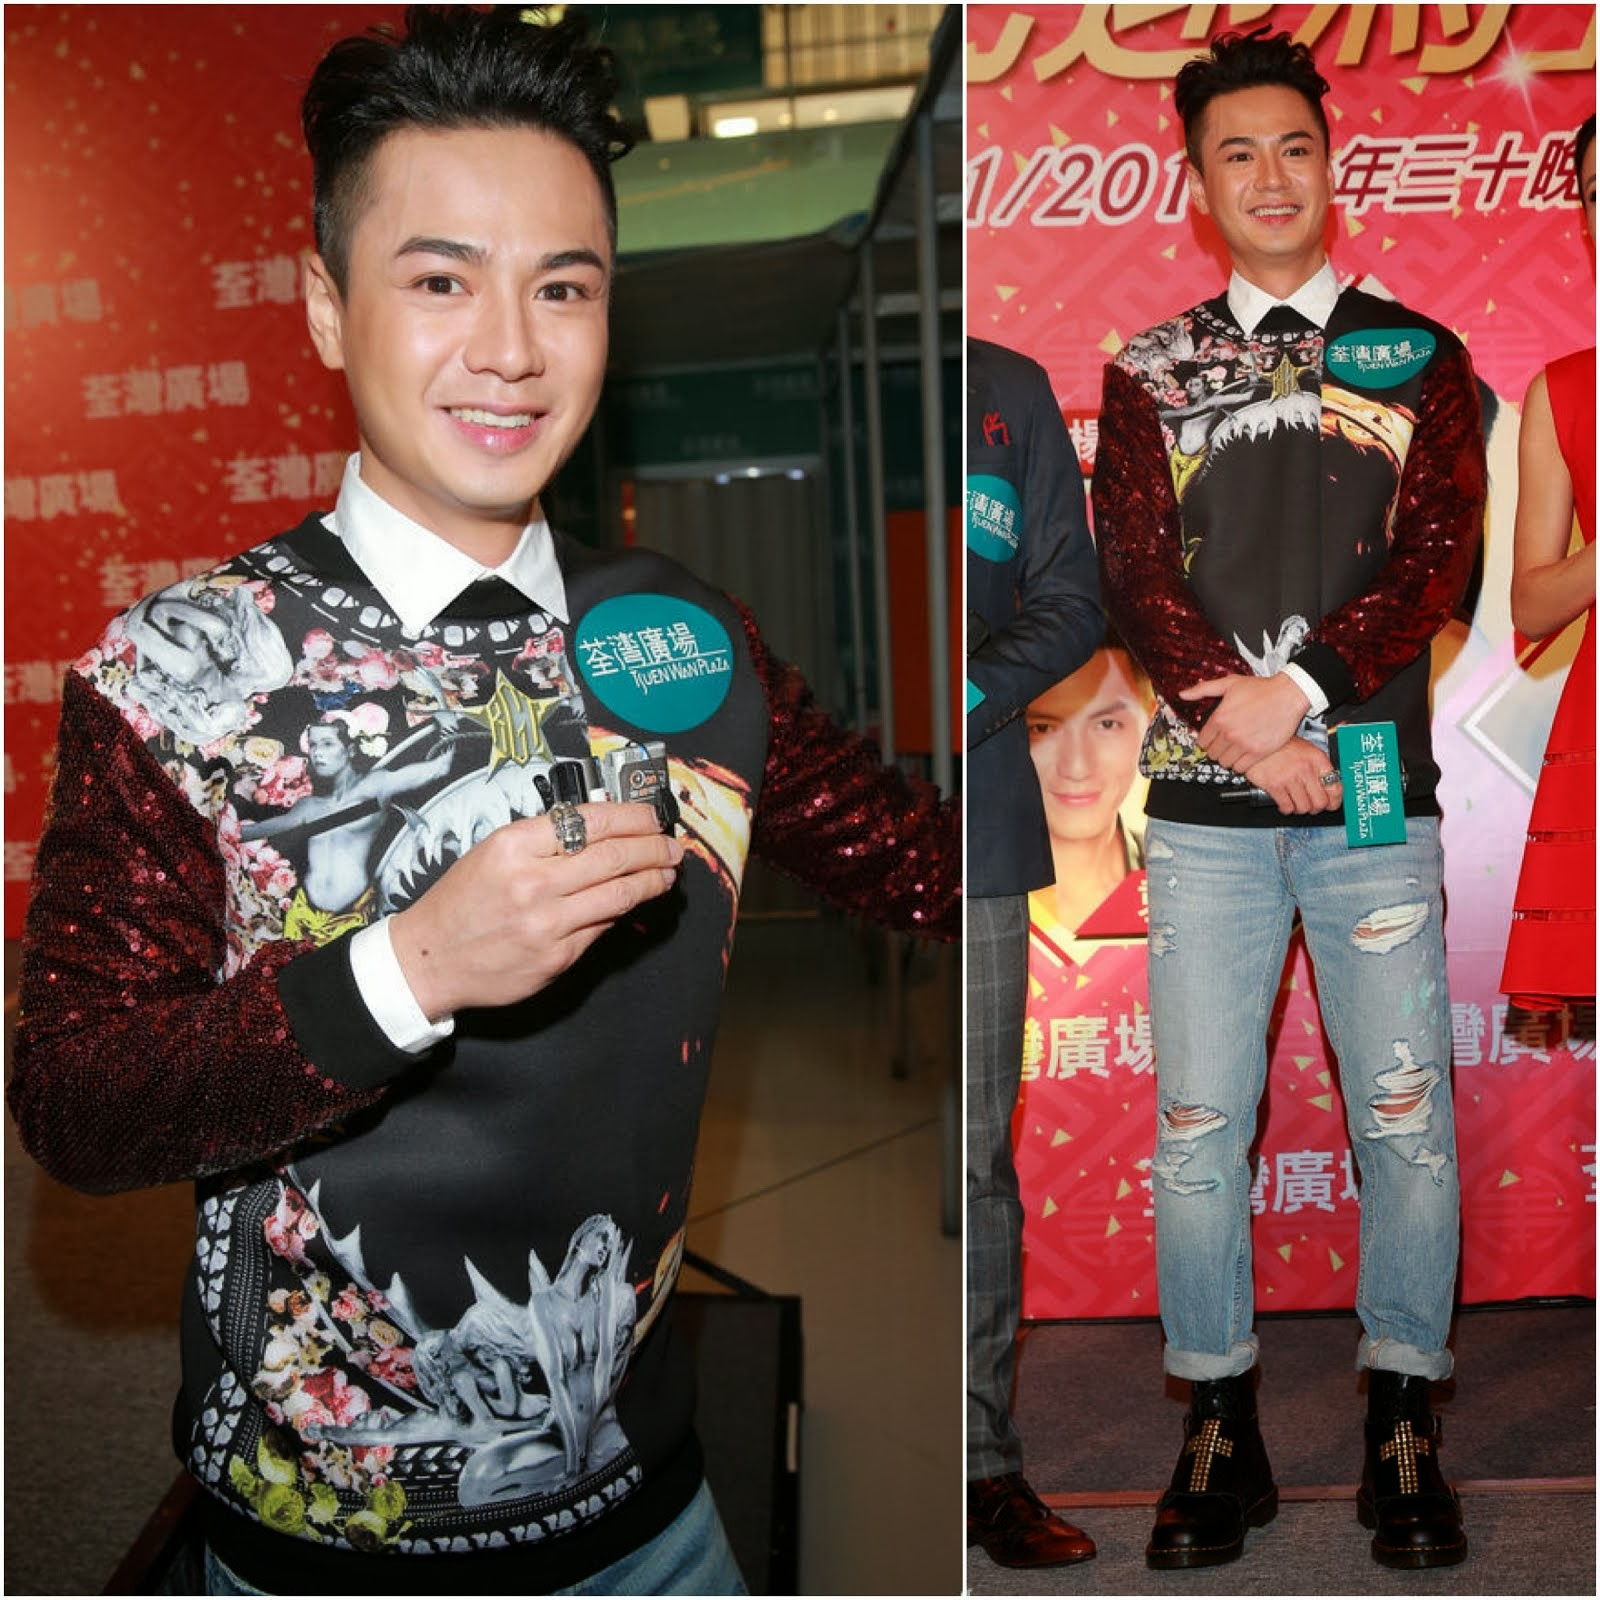 Law Chung-Him [罗仲谦] in Givenchy - Chinese New Year Festivities